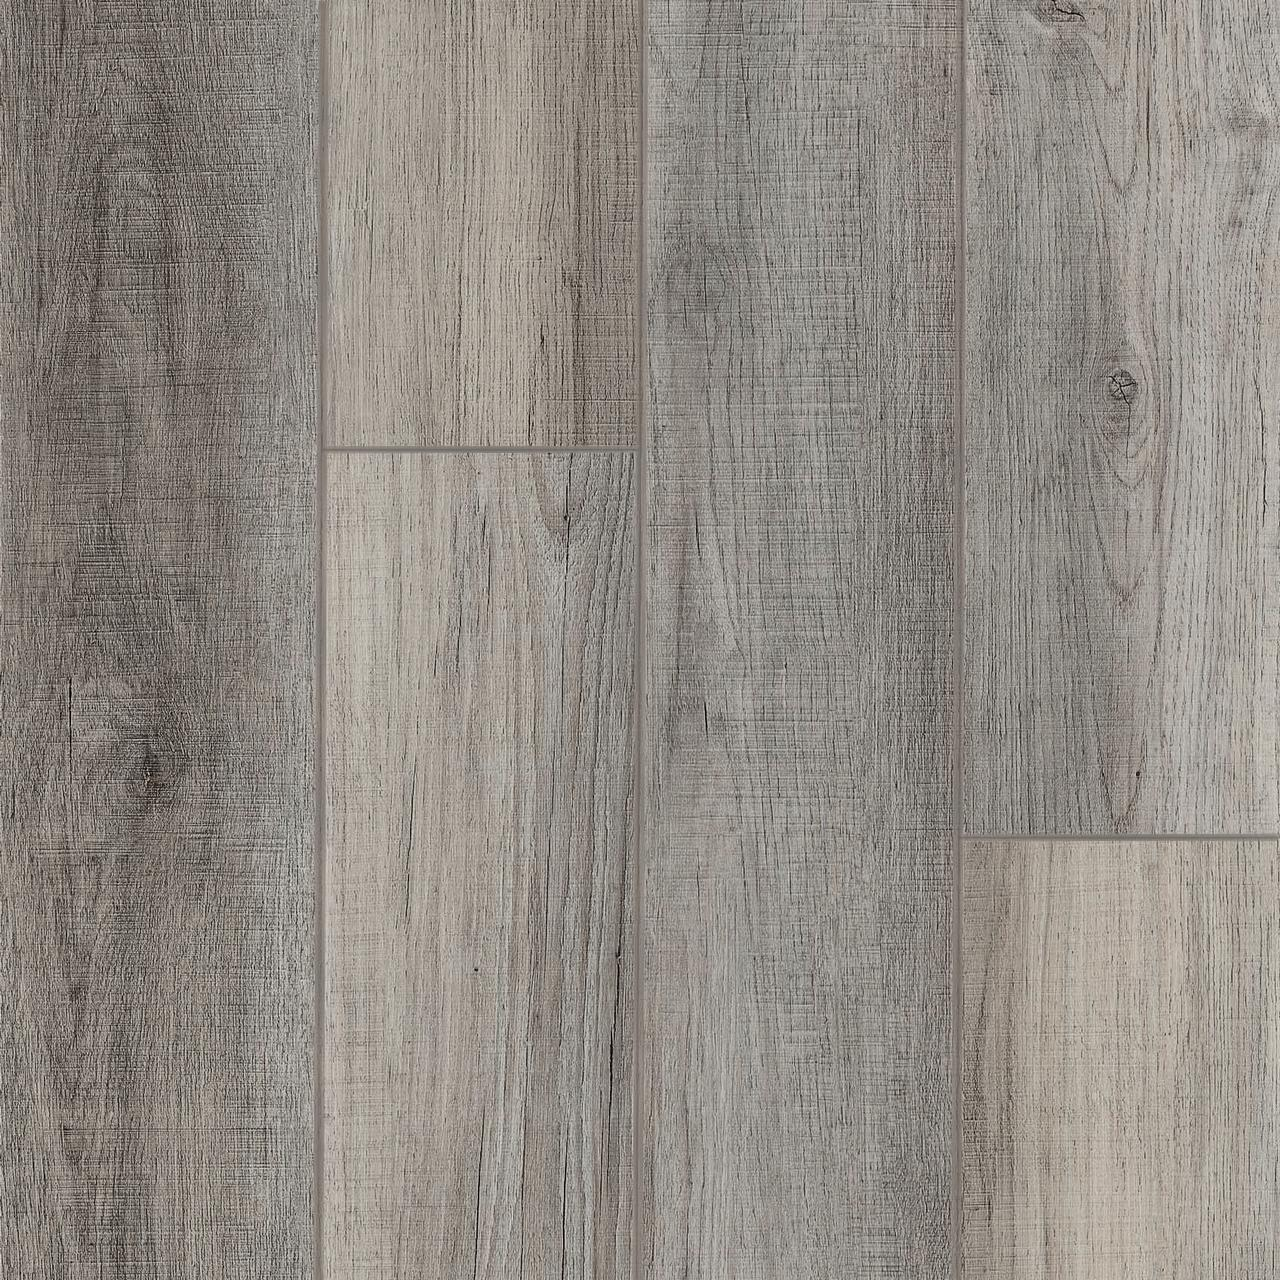 armstrong flooring luxury vinyl plank rigid core essentials locking 5 67 x47 76 wolf point hickory silver reflection 18 8 sq ft